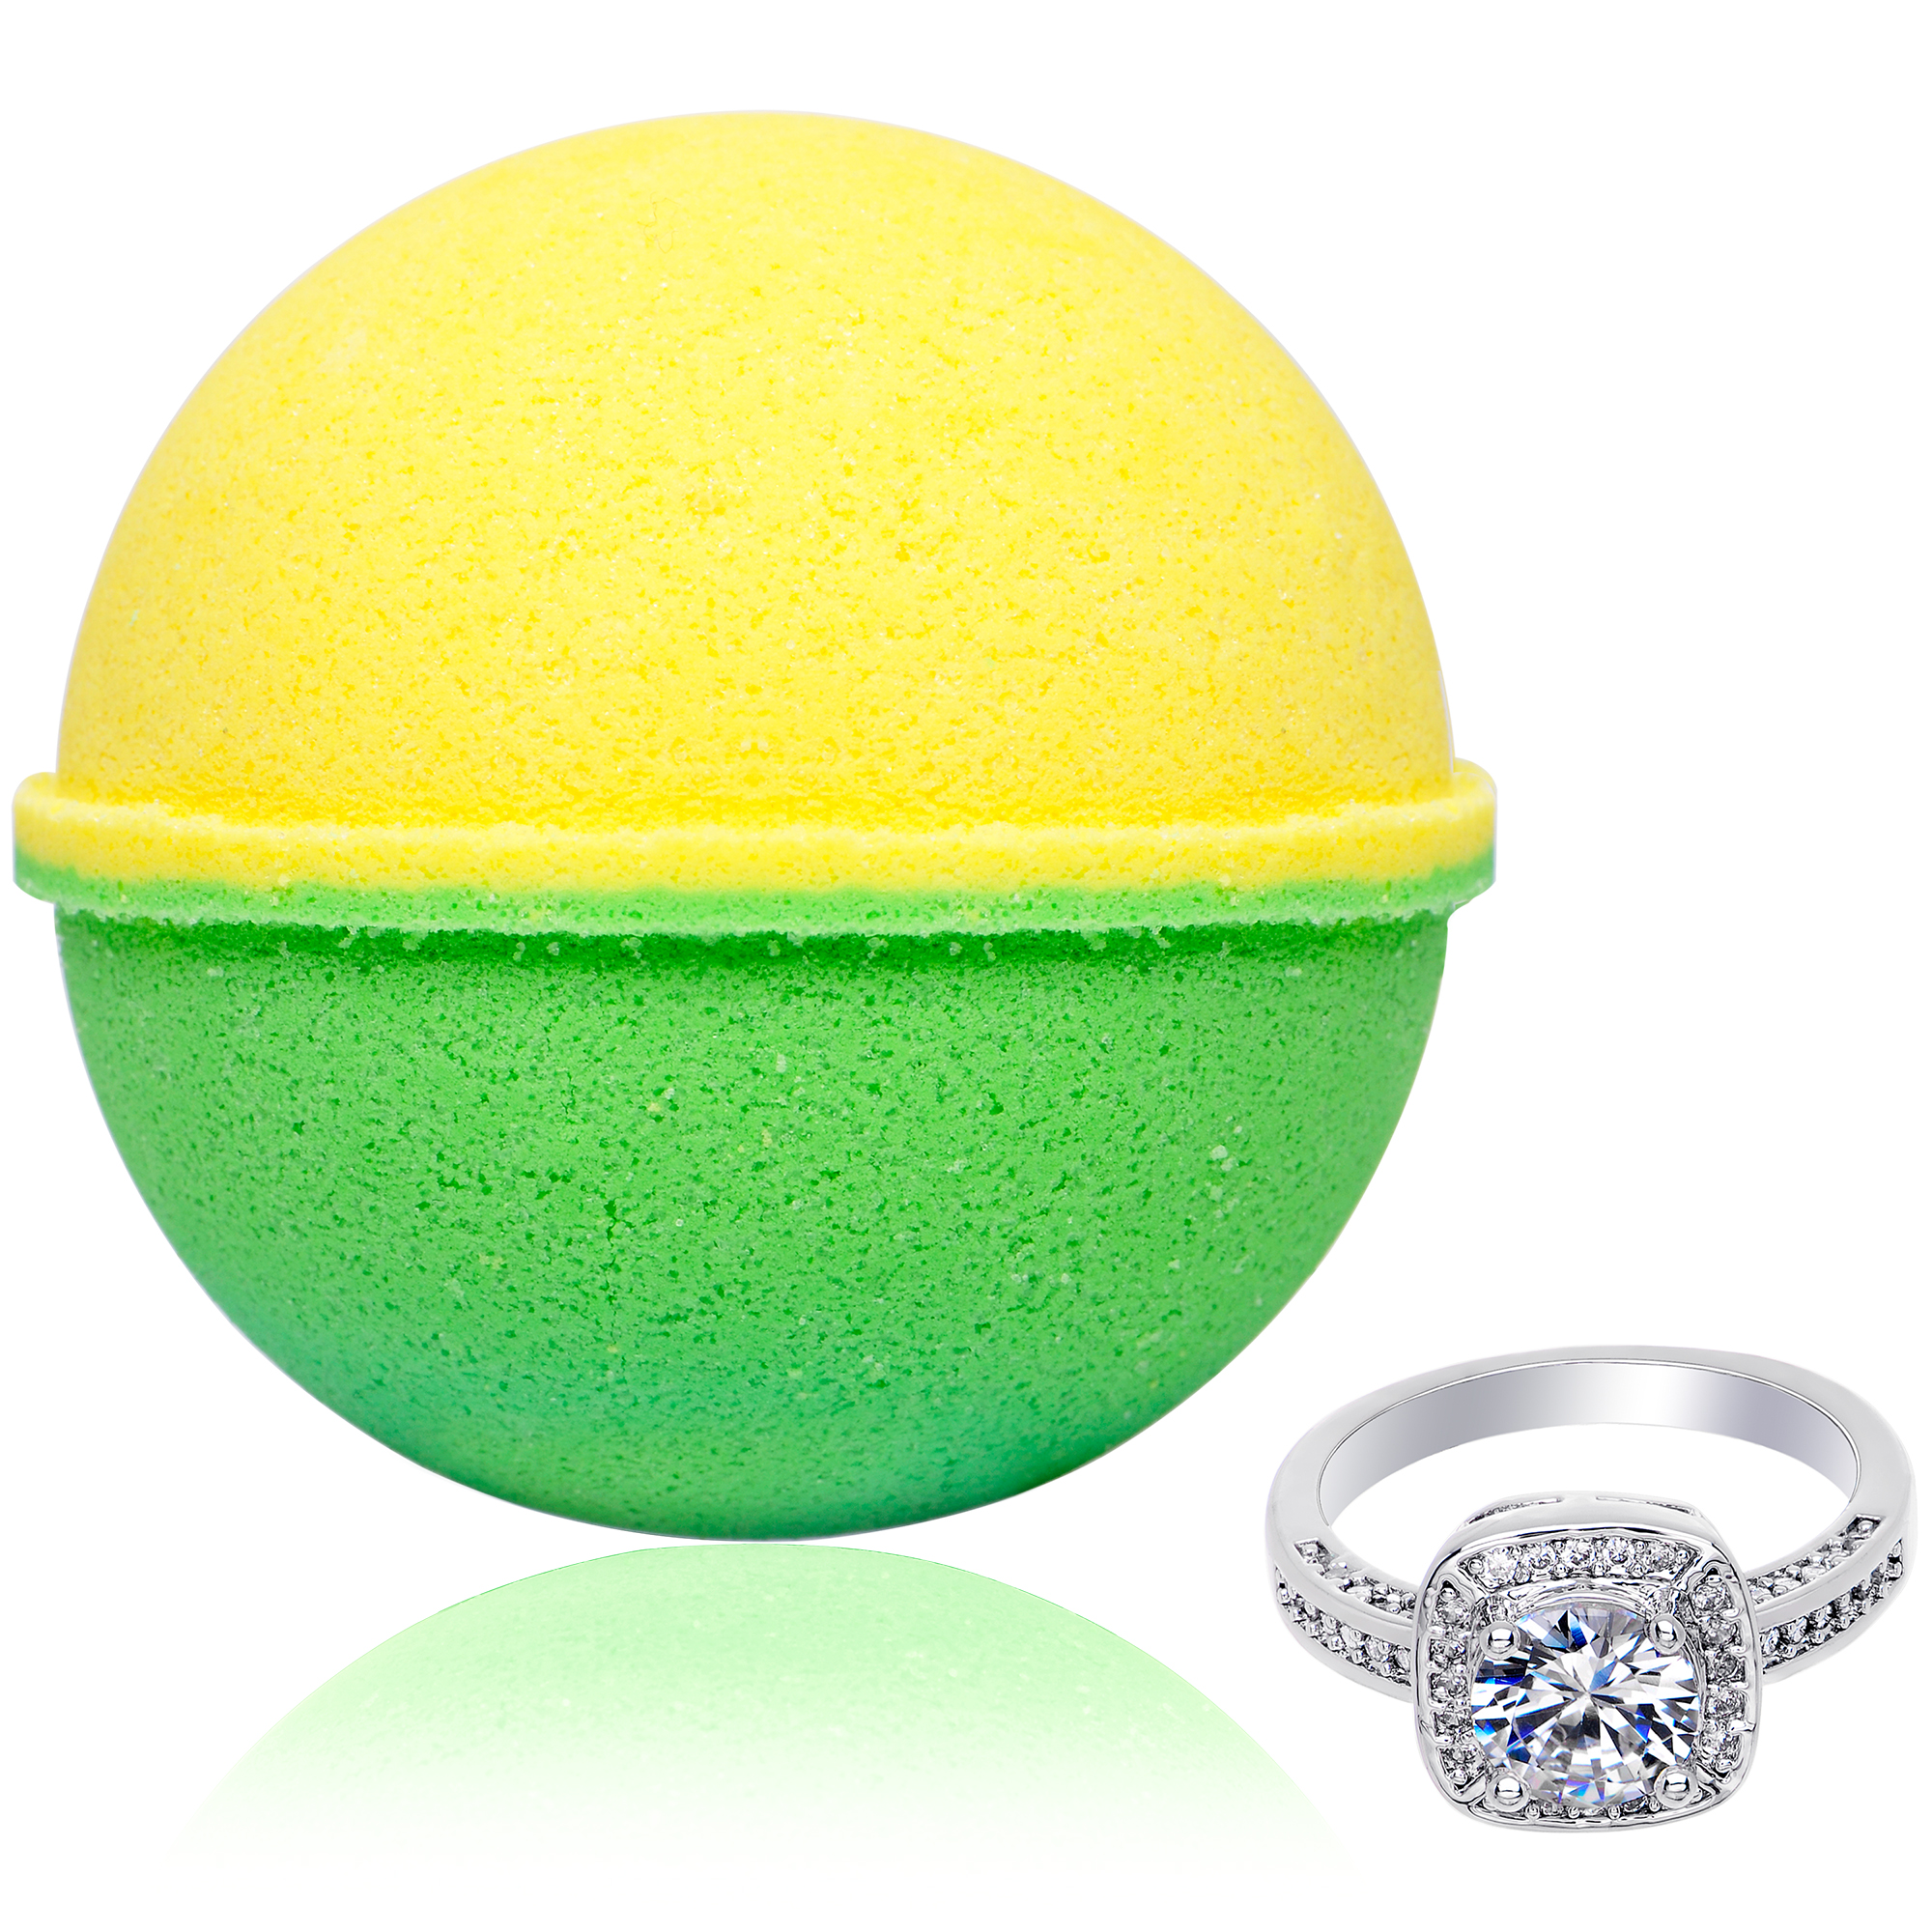 Bath Bomb with Surprise Size Ring Inside Bergamot Extra Large 10 oz. Made in USA